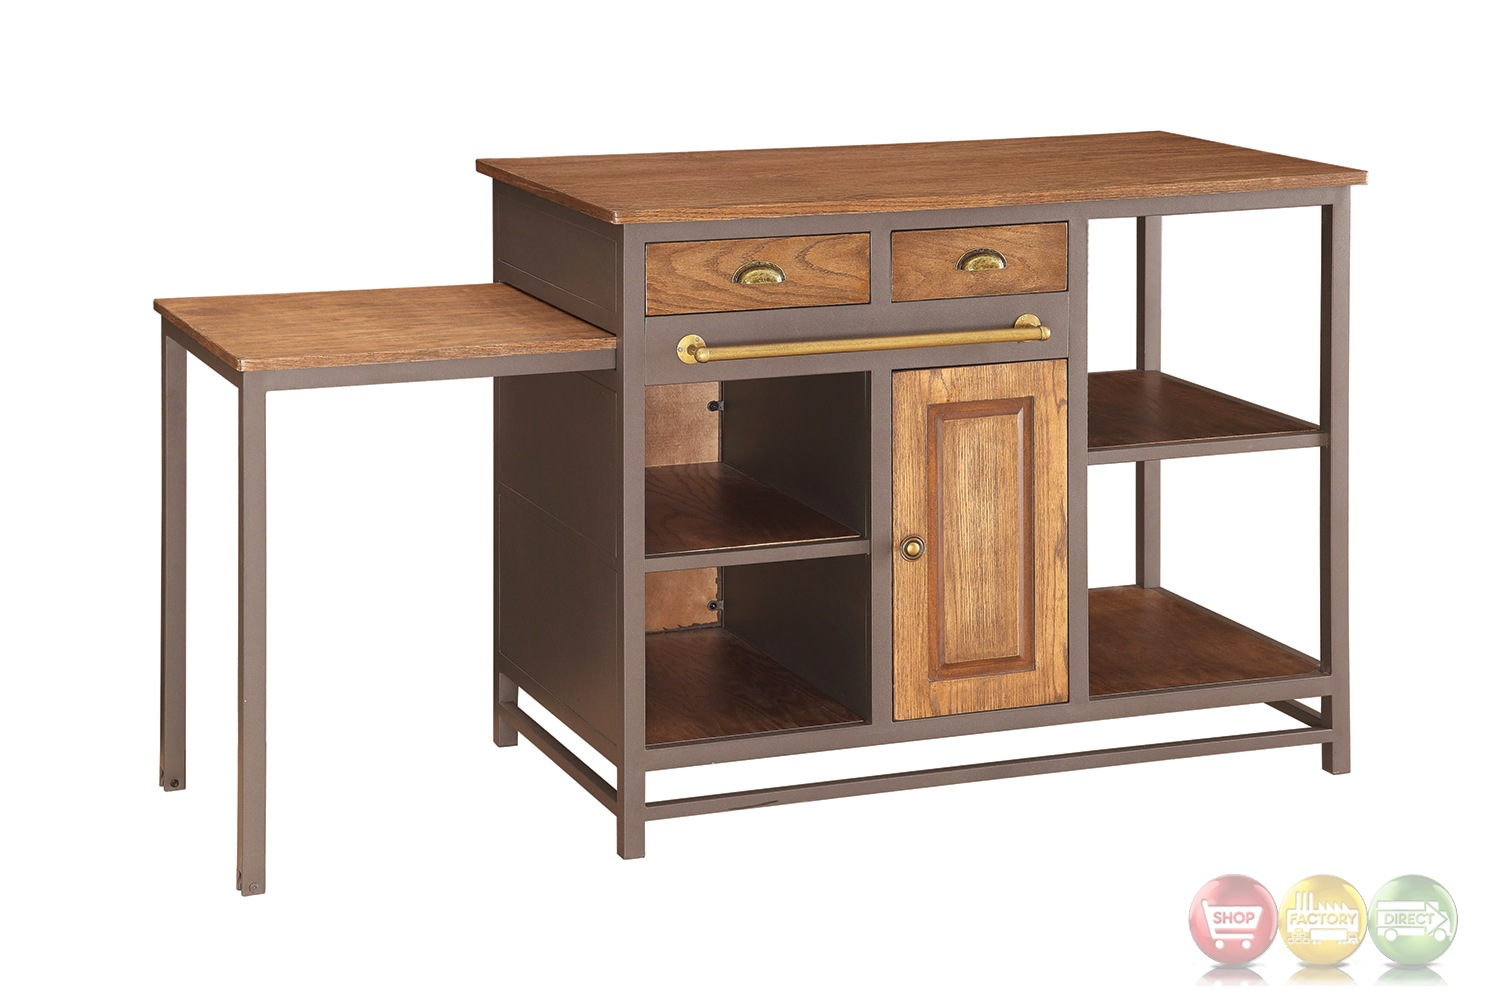 Metal and wood 2 drawer kitchen island with pull out table for Kitchen island table